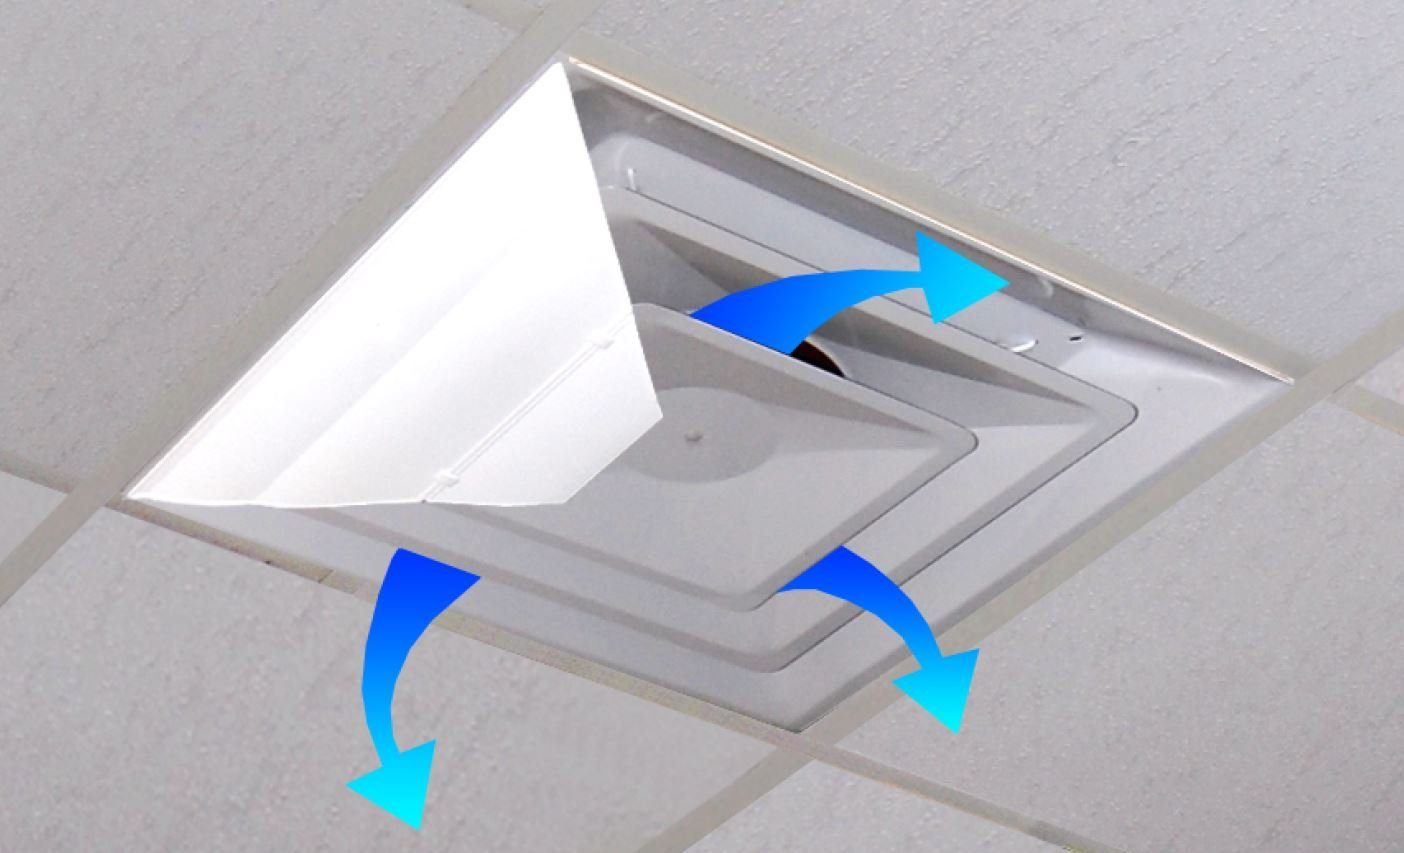 "Airvisor Air Deflector For Office Ceiling Vents (24"" X 24"") 14"